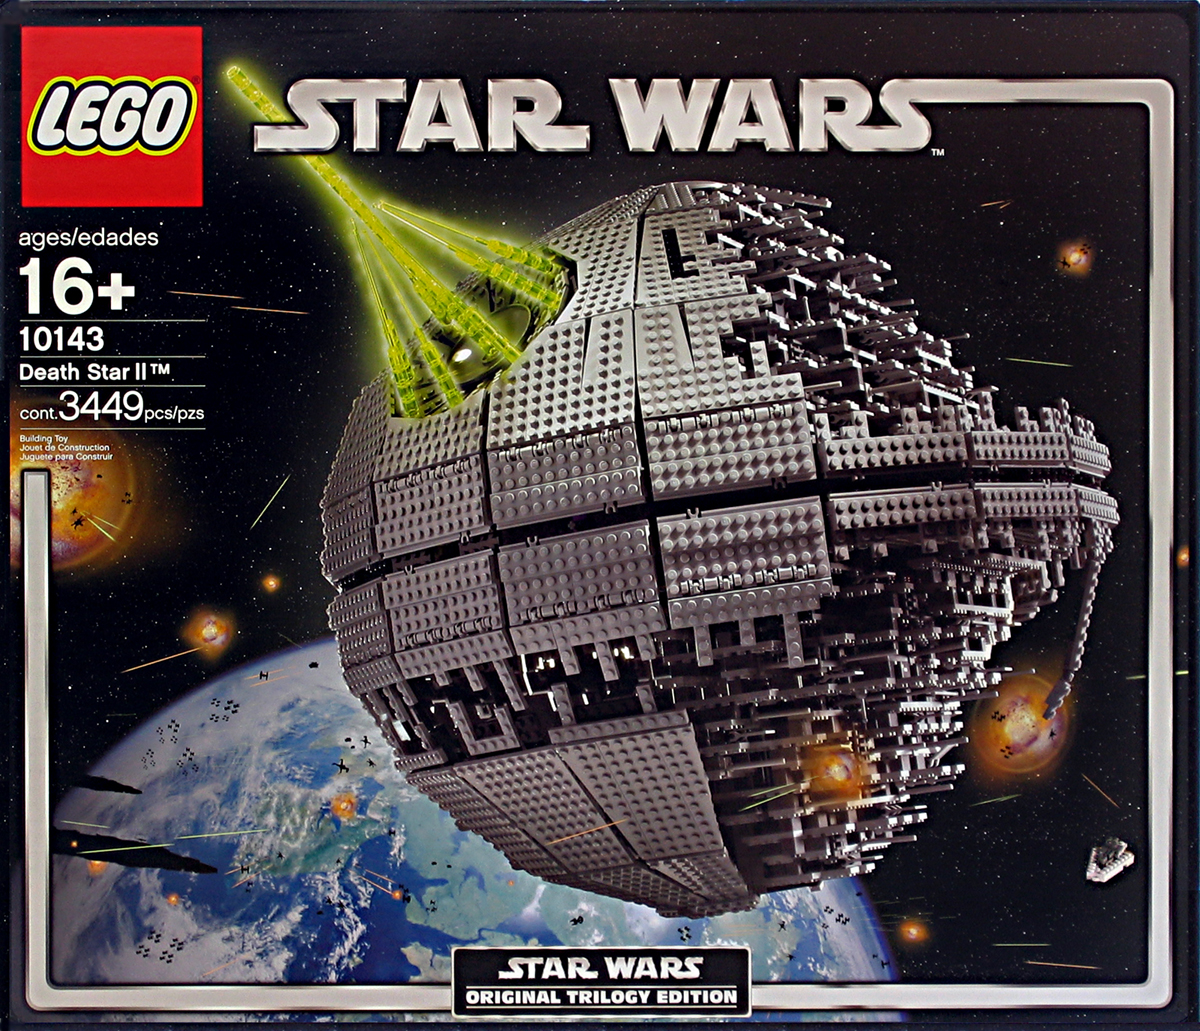 Lego star wars review 10143 death star ii from bricks to bothans